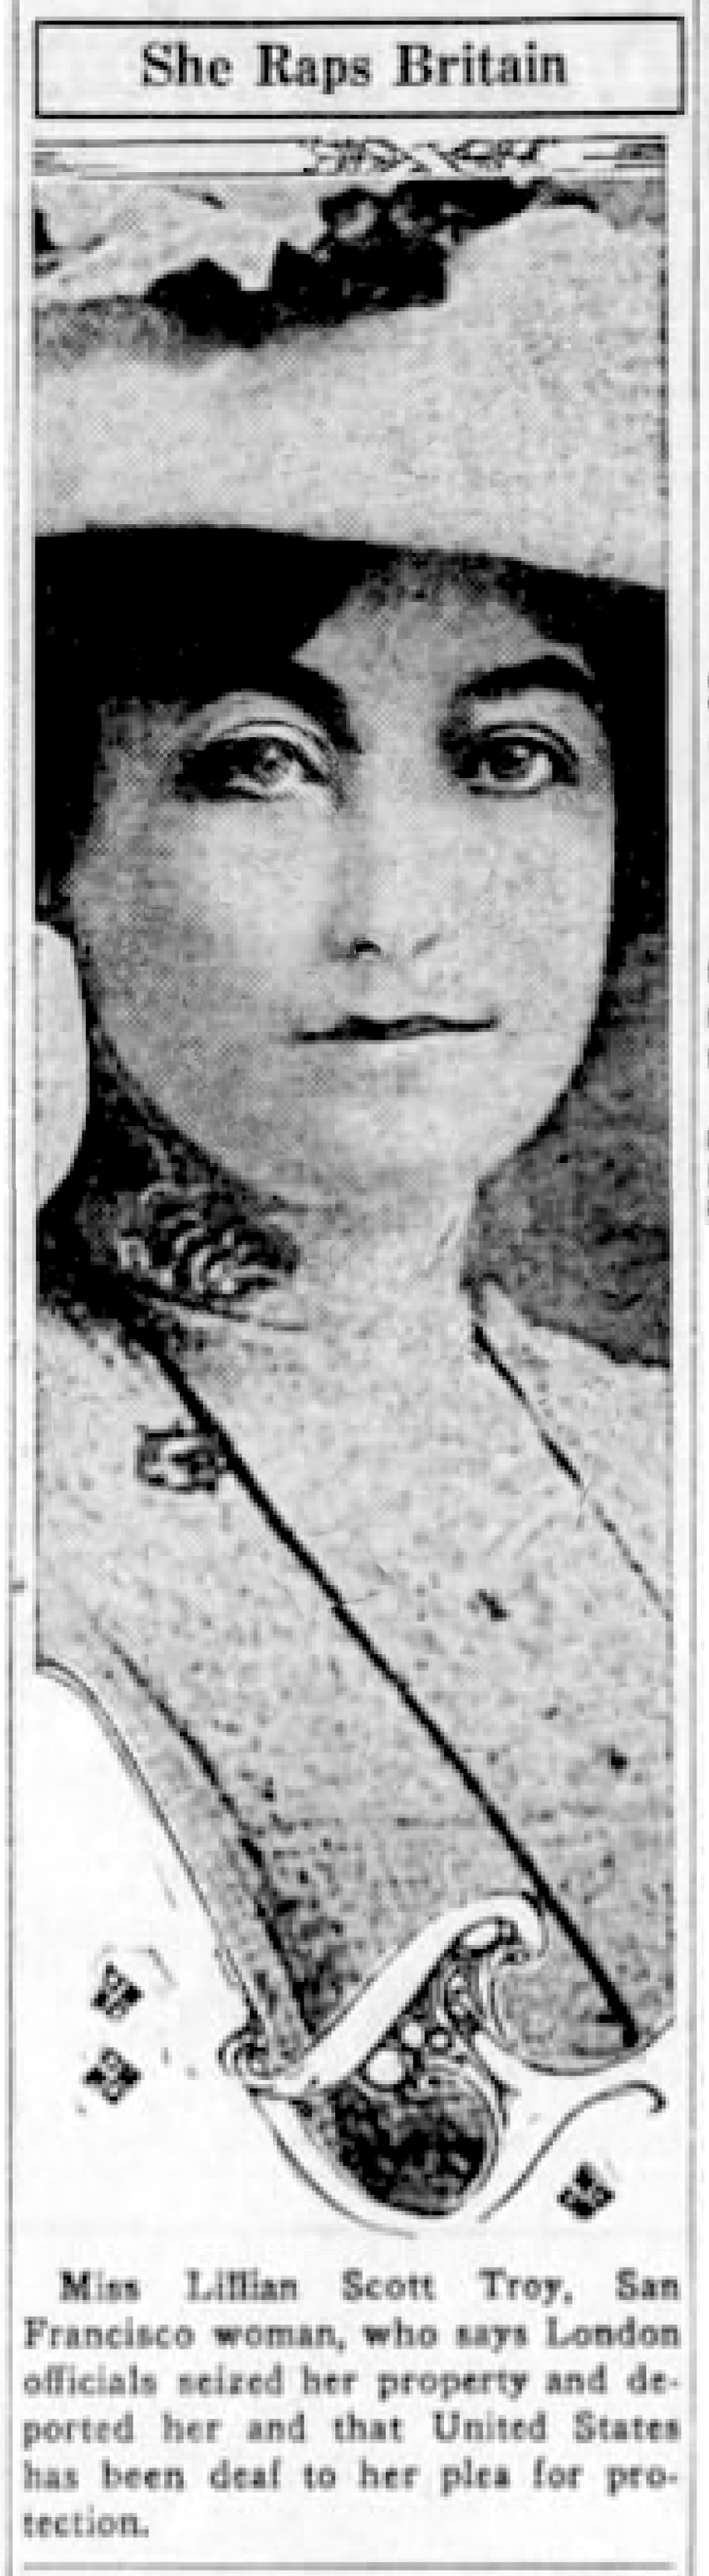 Lillian Scot Troy, intrepid San Francisco journalist, suffragette and vocal critic of the Pilgrims Society's seditious, treasoness efforts to destroy the American Constitution and Bill of Rights and reunite with the British Empire. Her work was so irritating to the British government that she was deported under false pretences on Nov. 13, 1919.